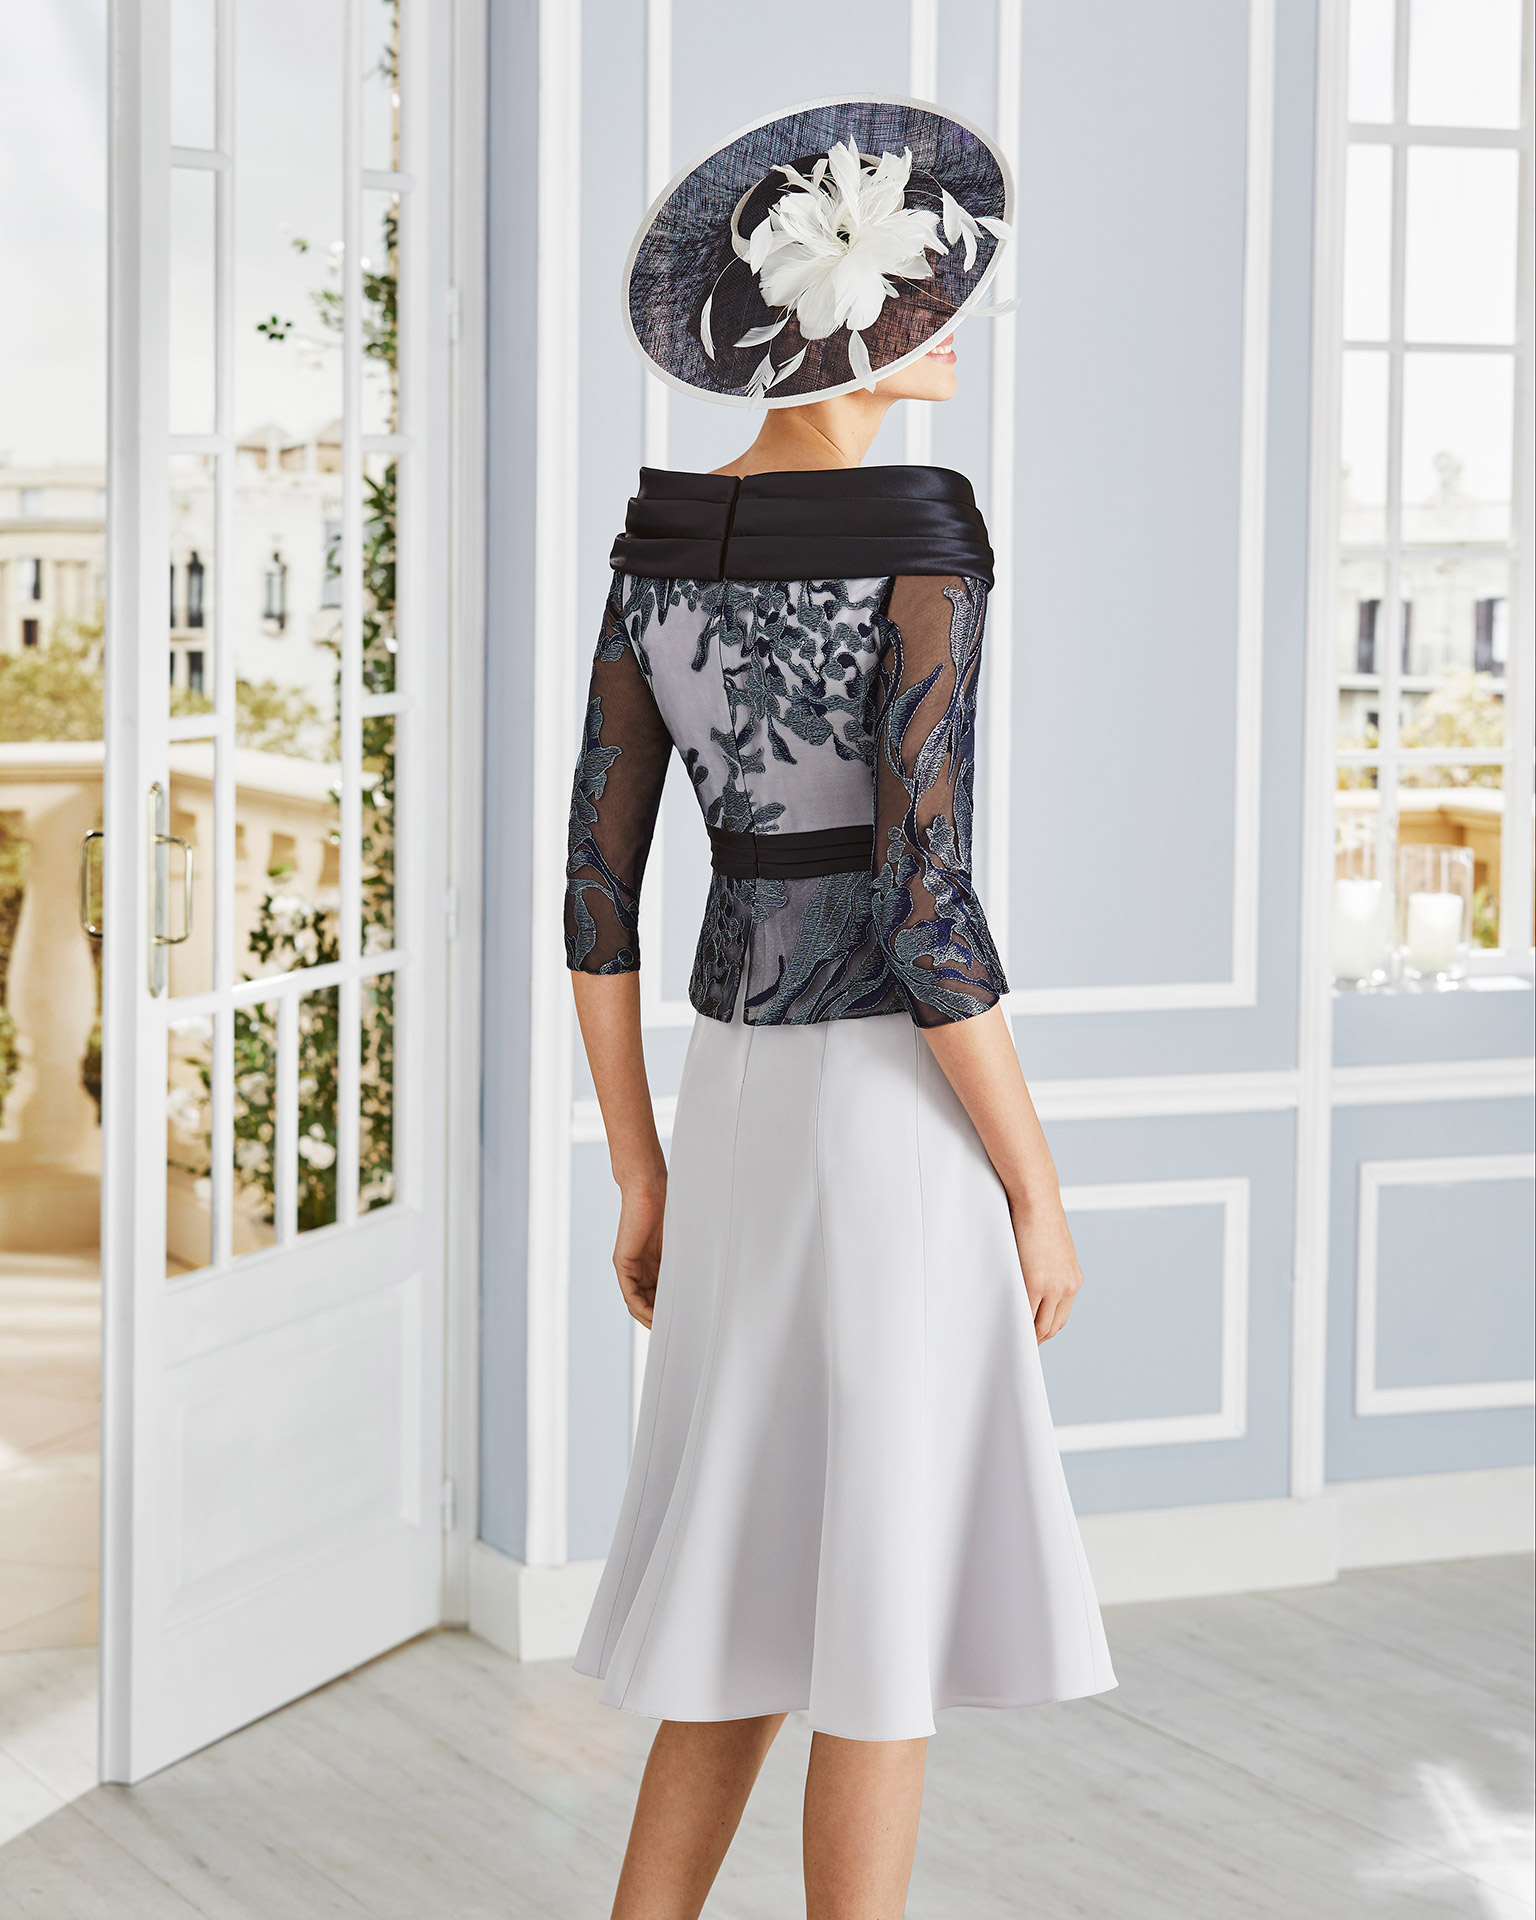 Short cocktail dress in crepe sateen with lace on the bodice. Off-the-shoulder neckline with three-quarter sleeves and sash. 2020 COUTURE CLUB Collection.